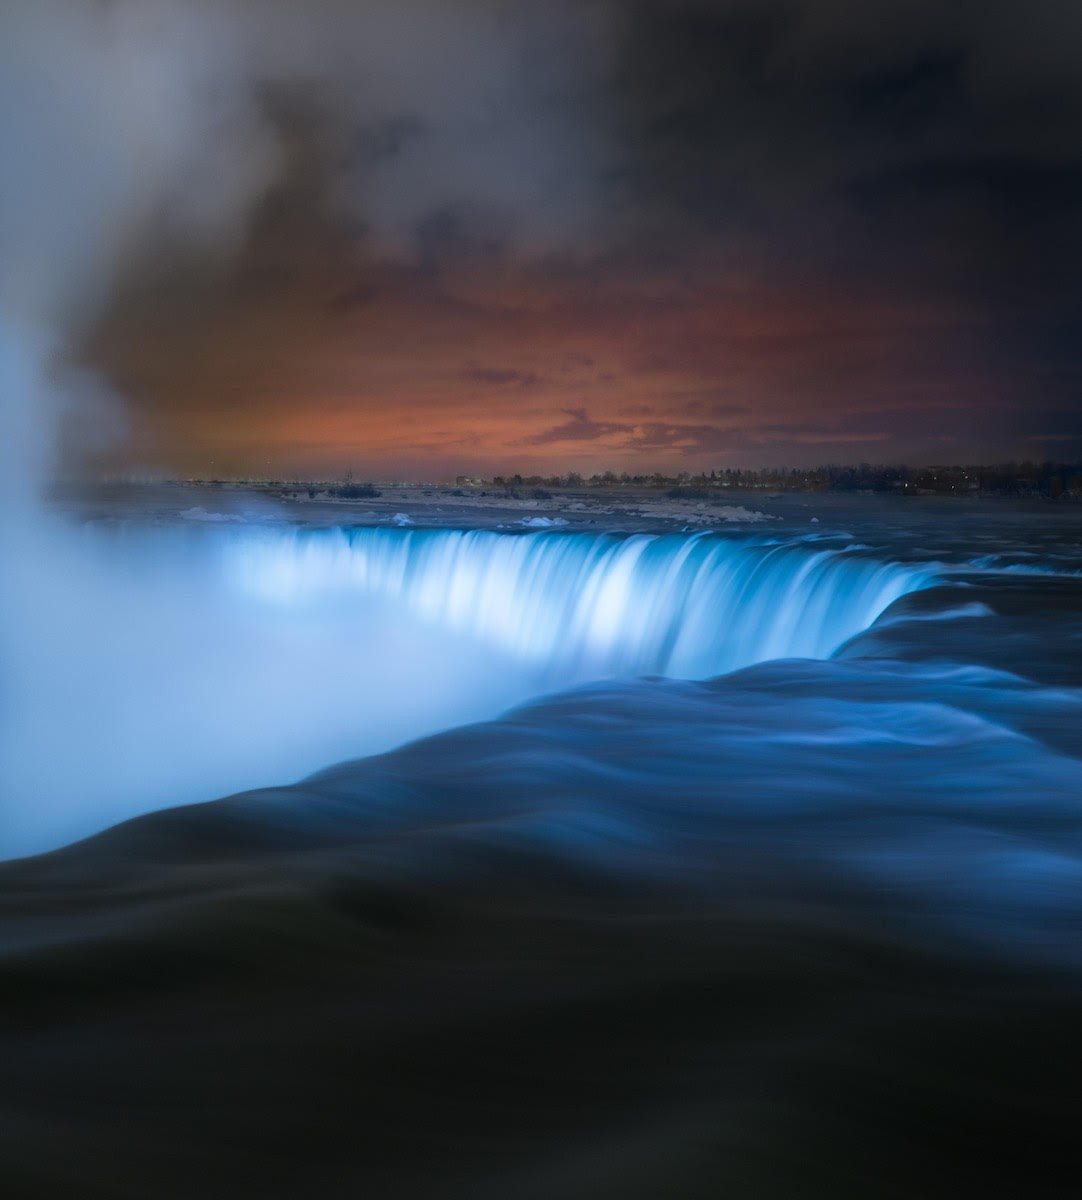 An Illuminated Niagara Falls Captured in a January Freeze by